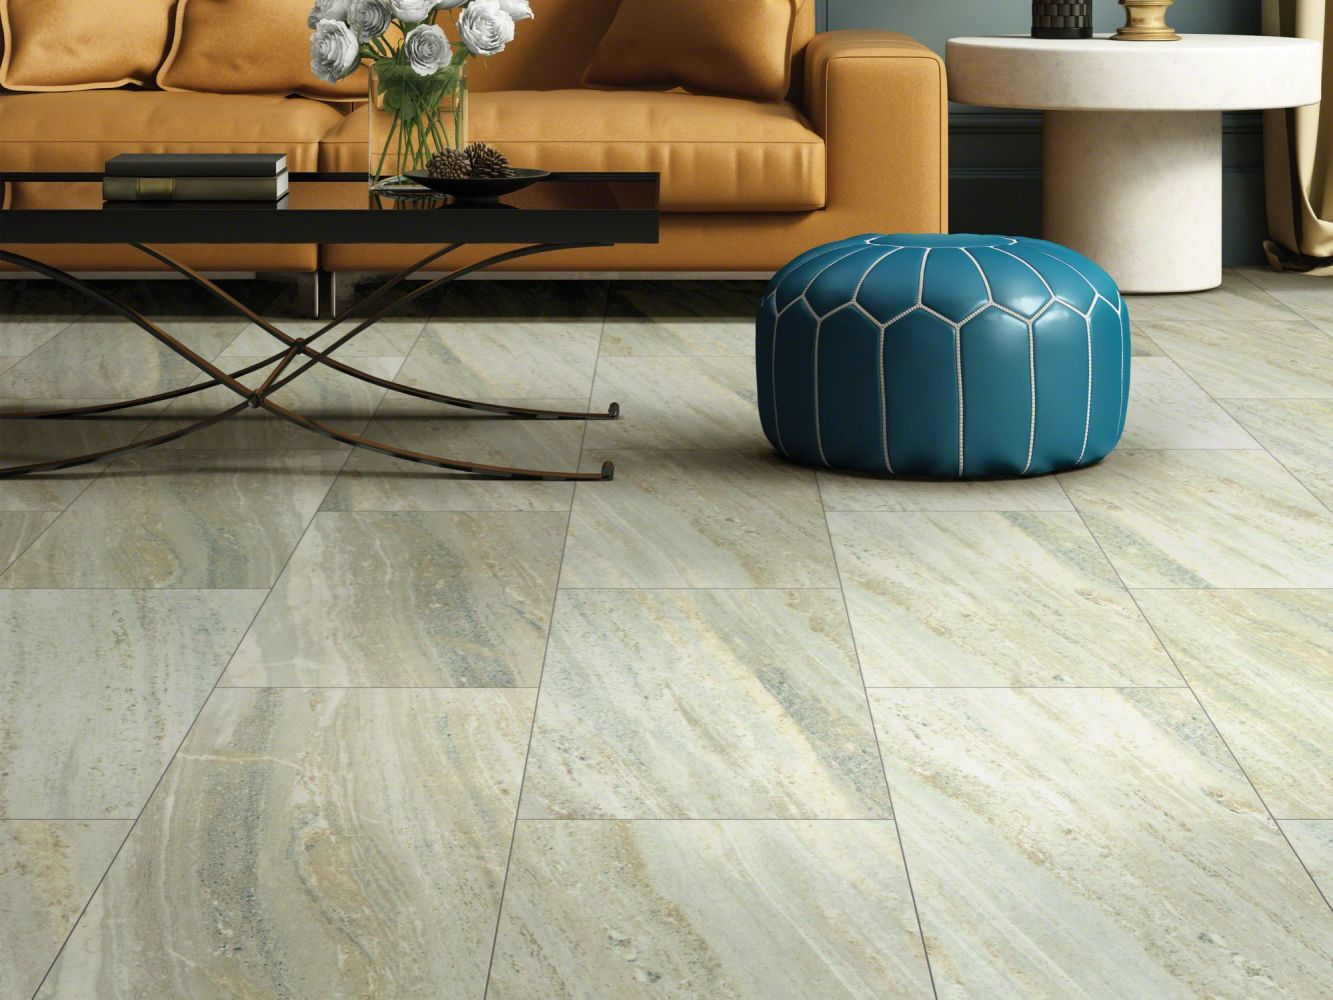 Shaw Floors Vinyl Residential Set In Stone 720c Plus Boulder 00585_0834V